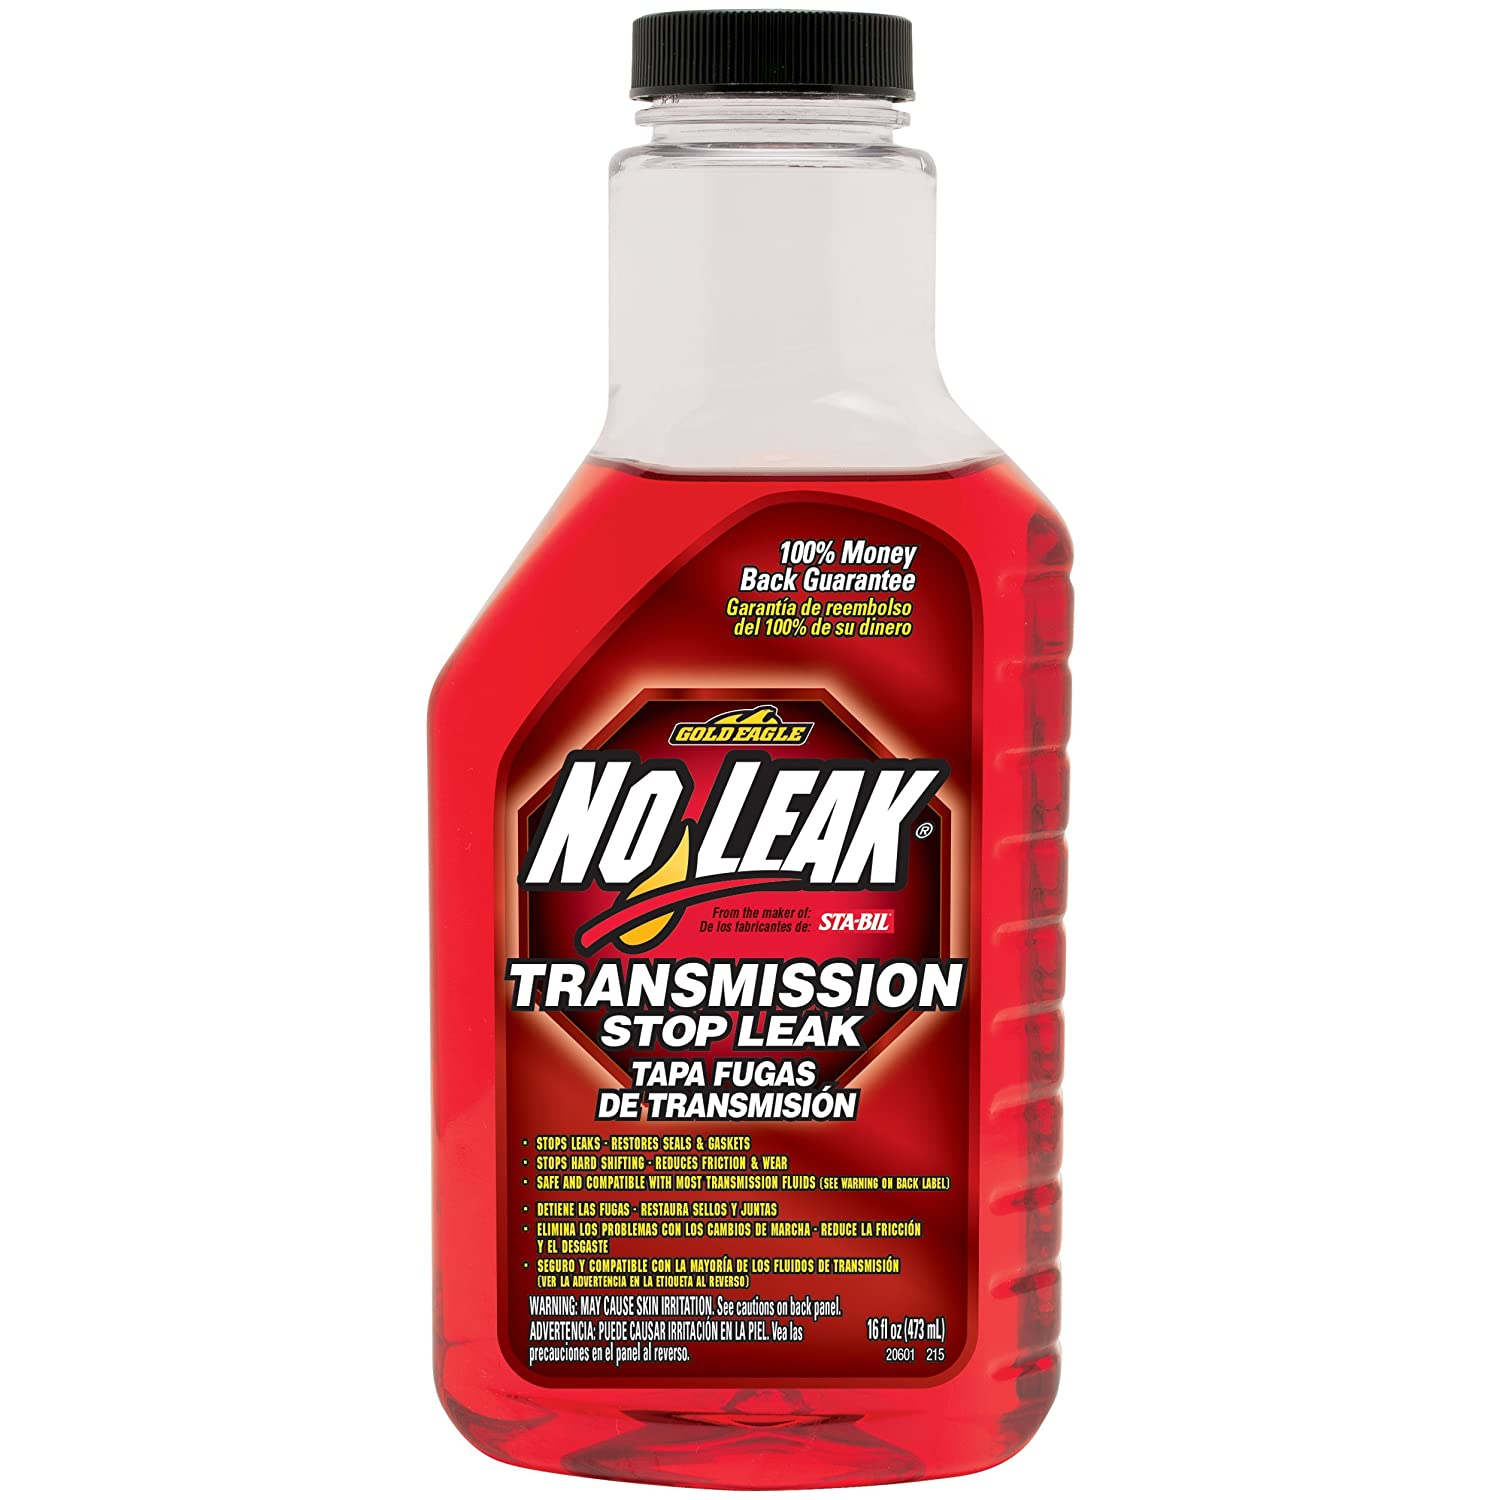 NO LEAK 20601 Transmission Treatment, 473 ml